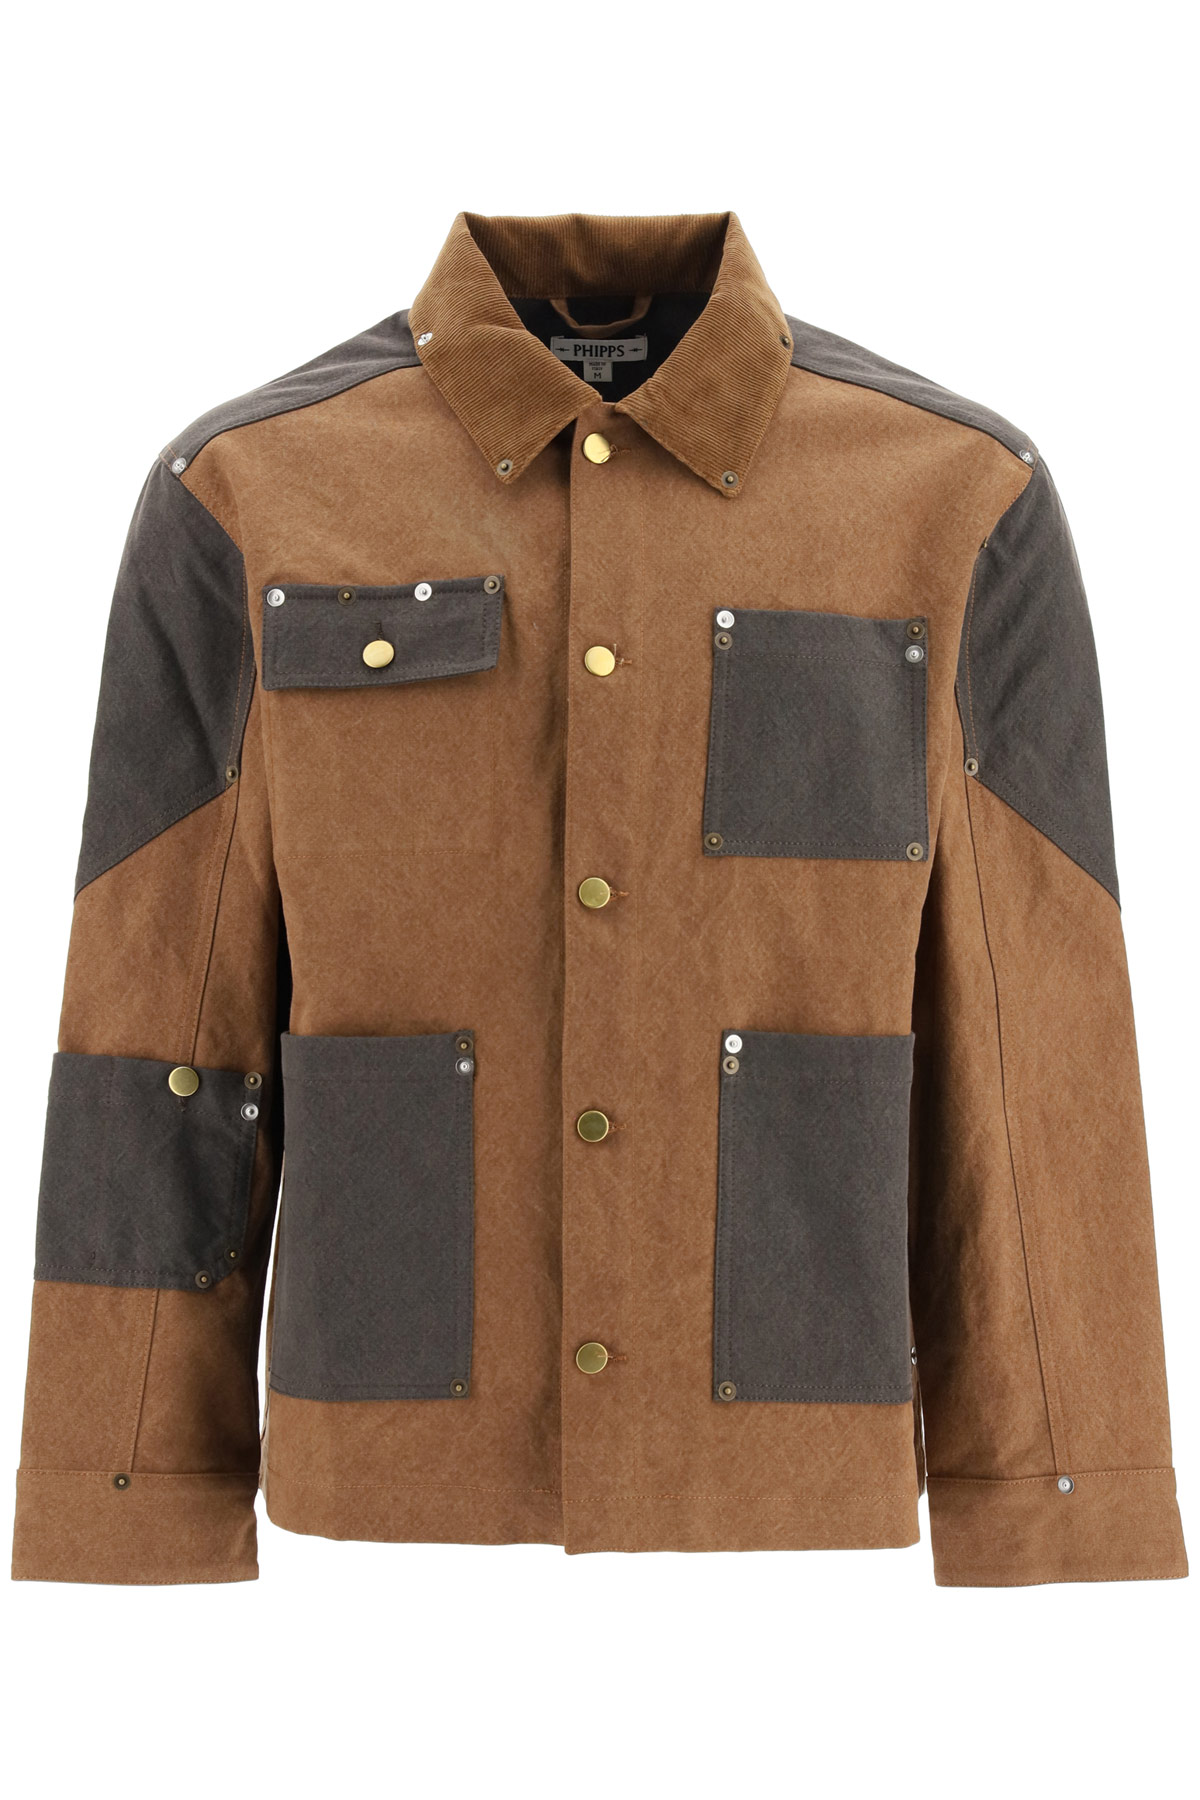 PHIPPS WORKWEAR JACKET L Brown, Grey Cotton